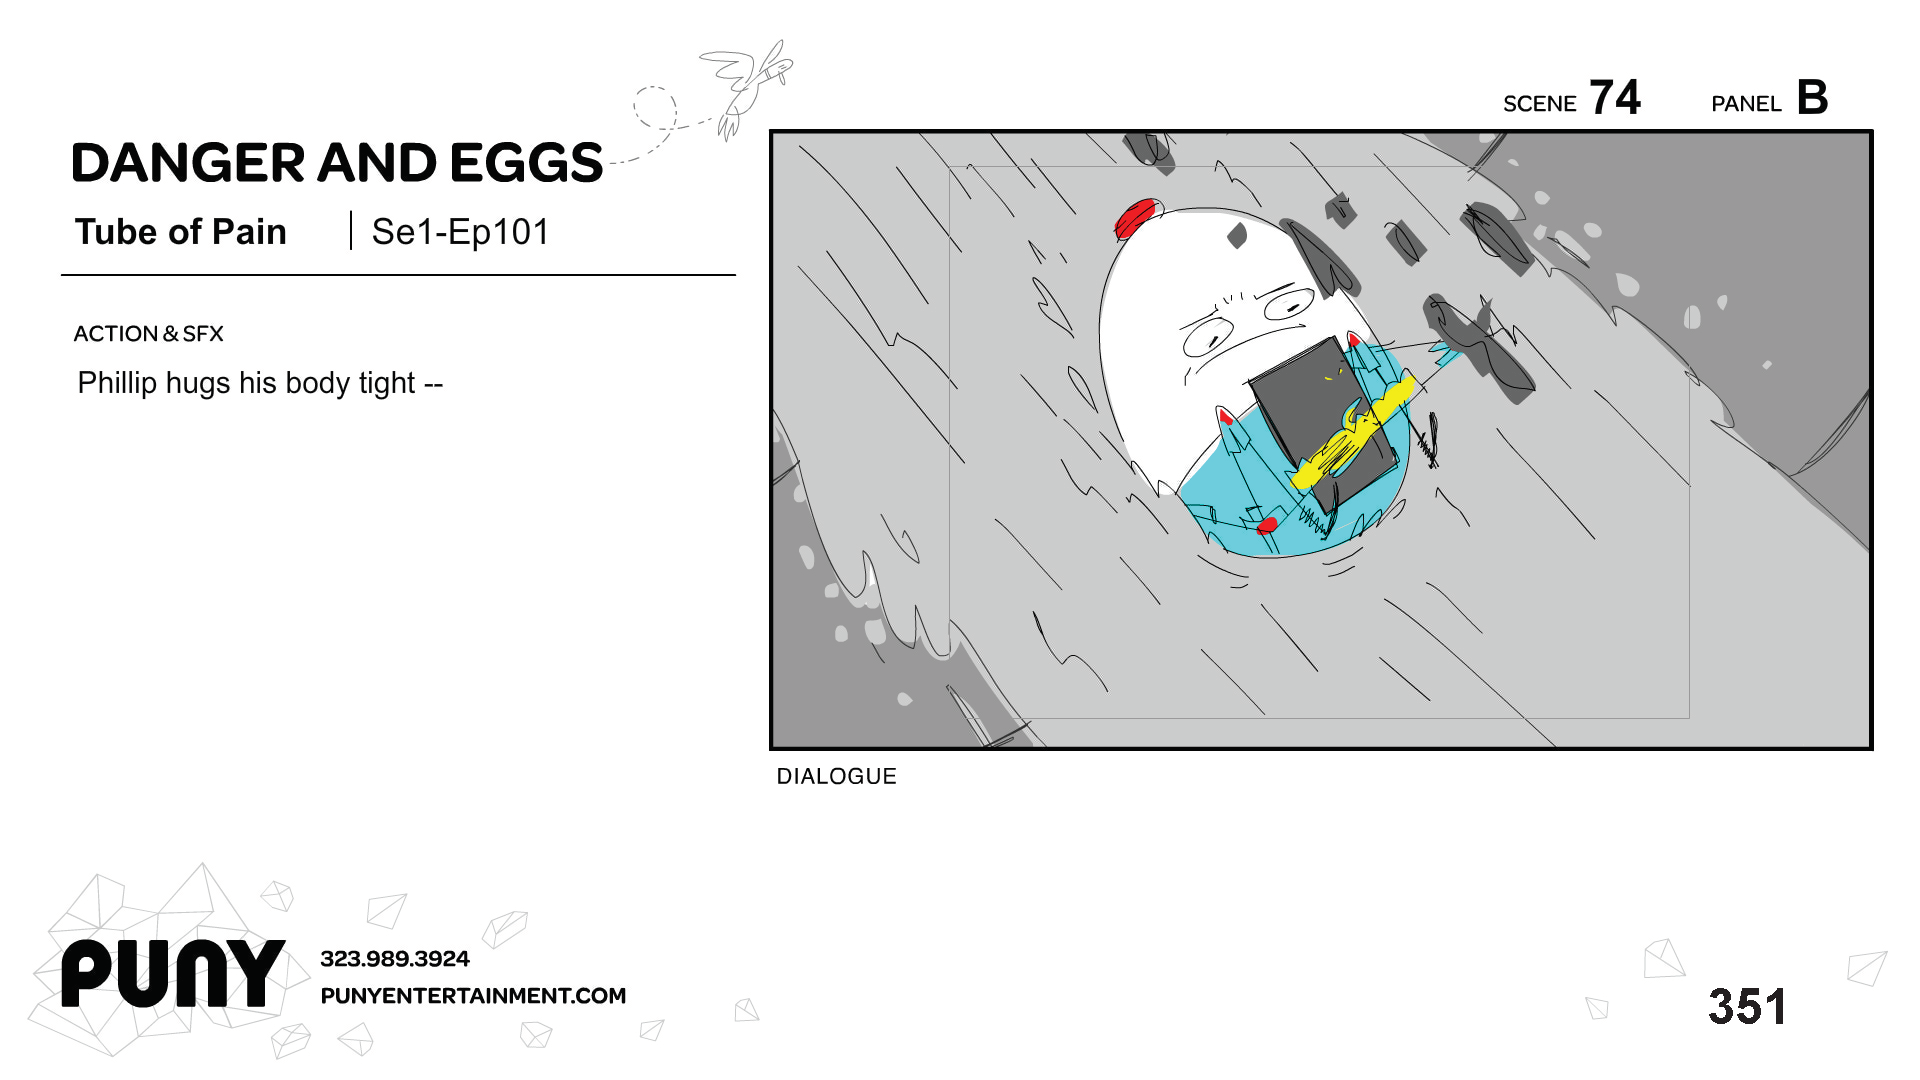 MikeOwens_STORYBOARDS_DangerAndEggs_Page_246.png